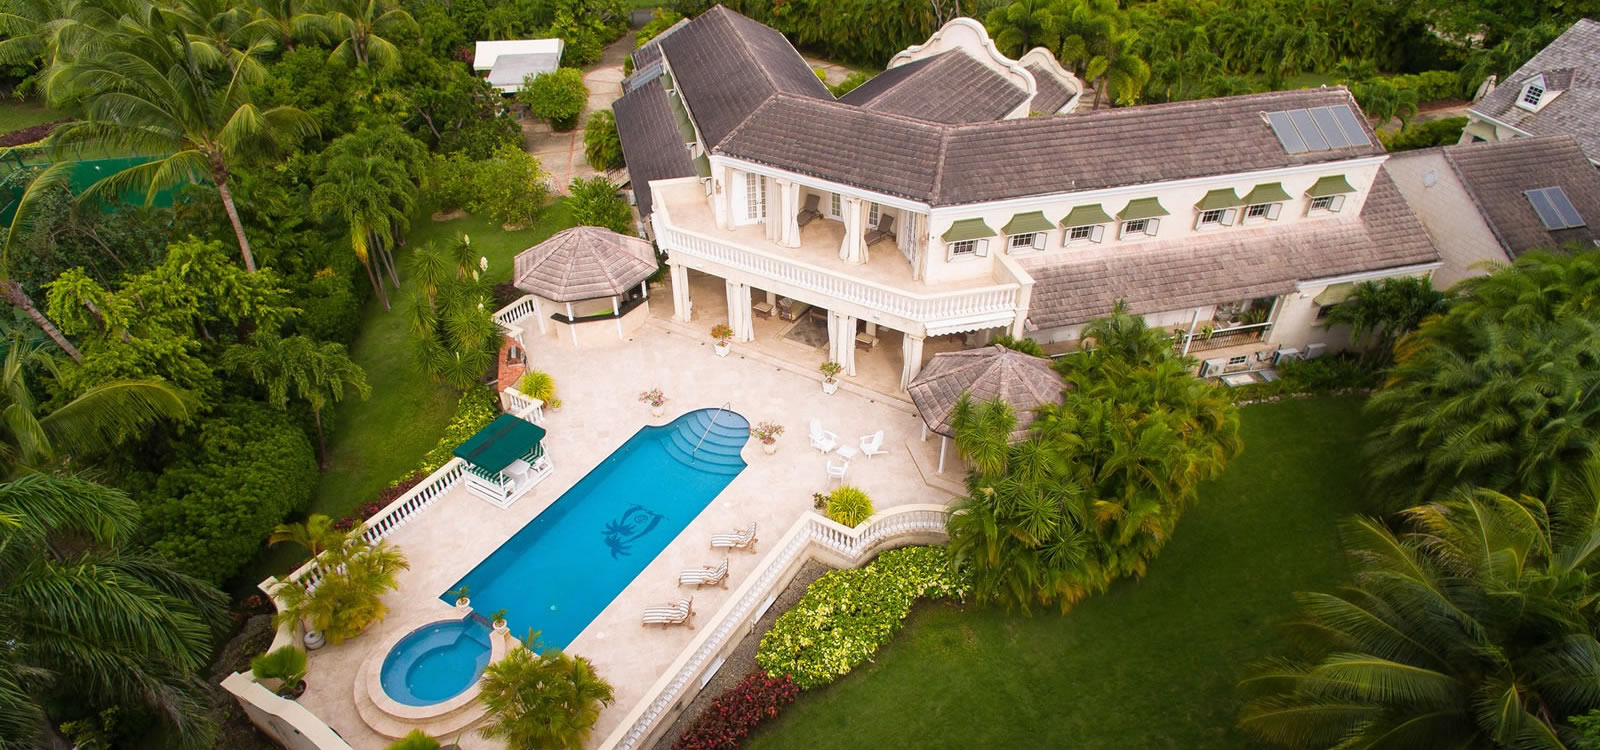 Magnificent estate for sale in Barbados's Sandy Lane